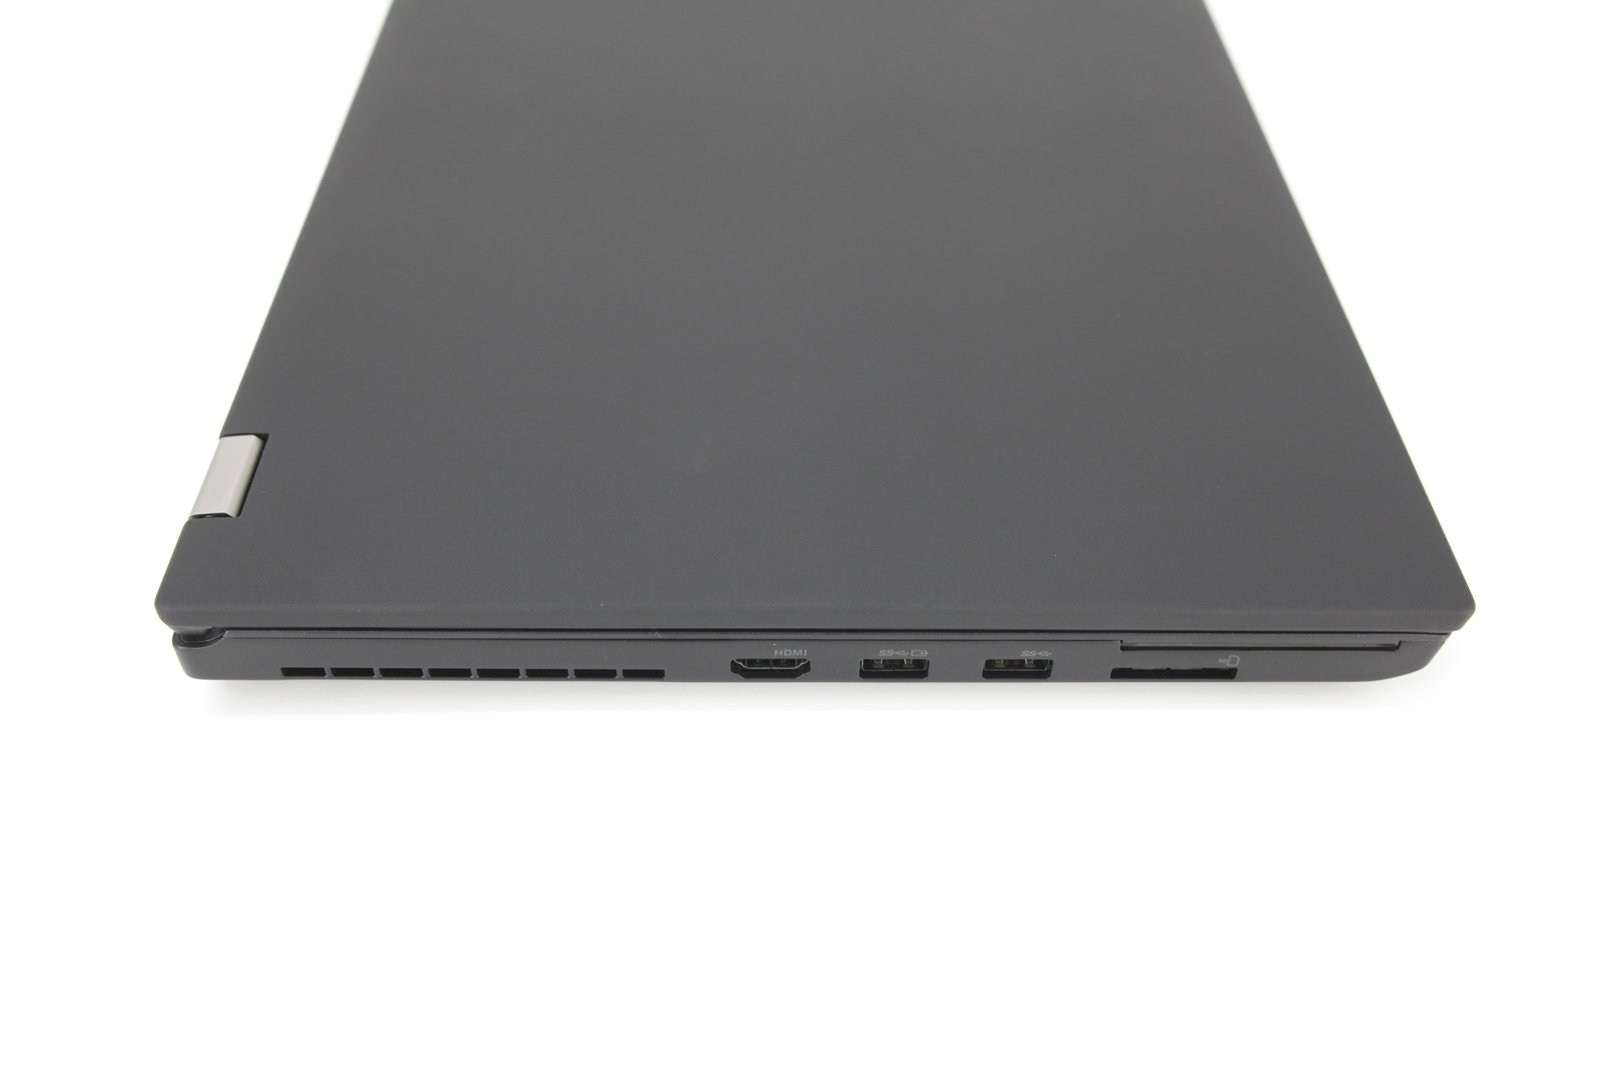 Lenovo ThinkPad P53 Laptop: Core i7-9750H 16GB RAM, Quadro T2000, 256GB Warranty - CruiseTech